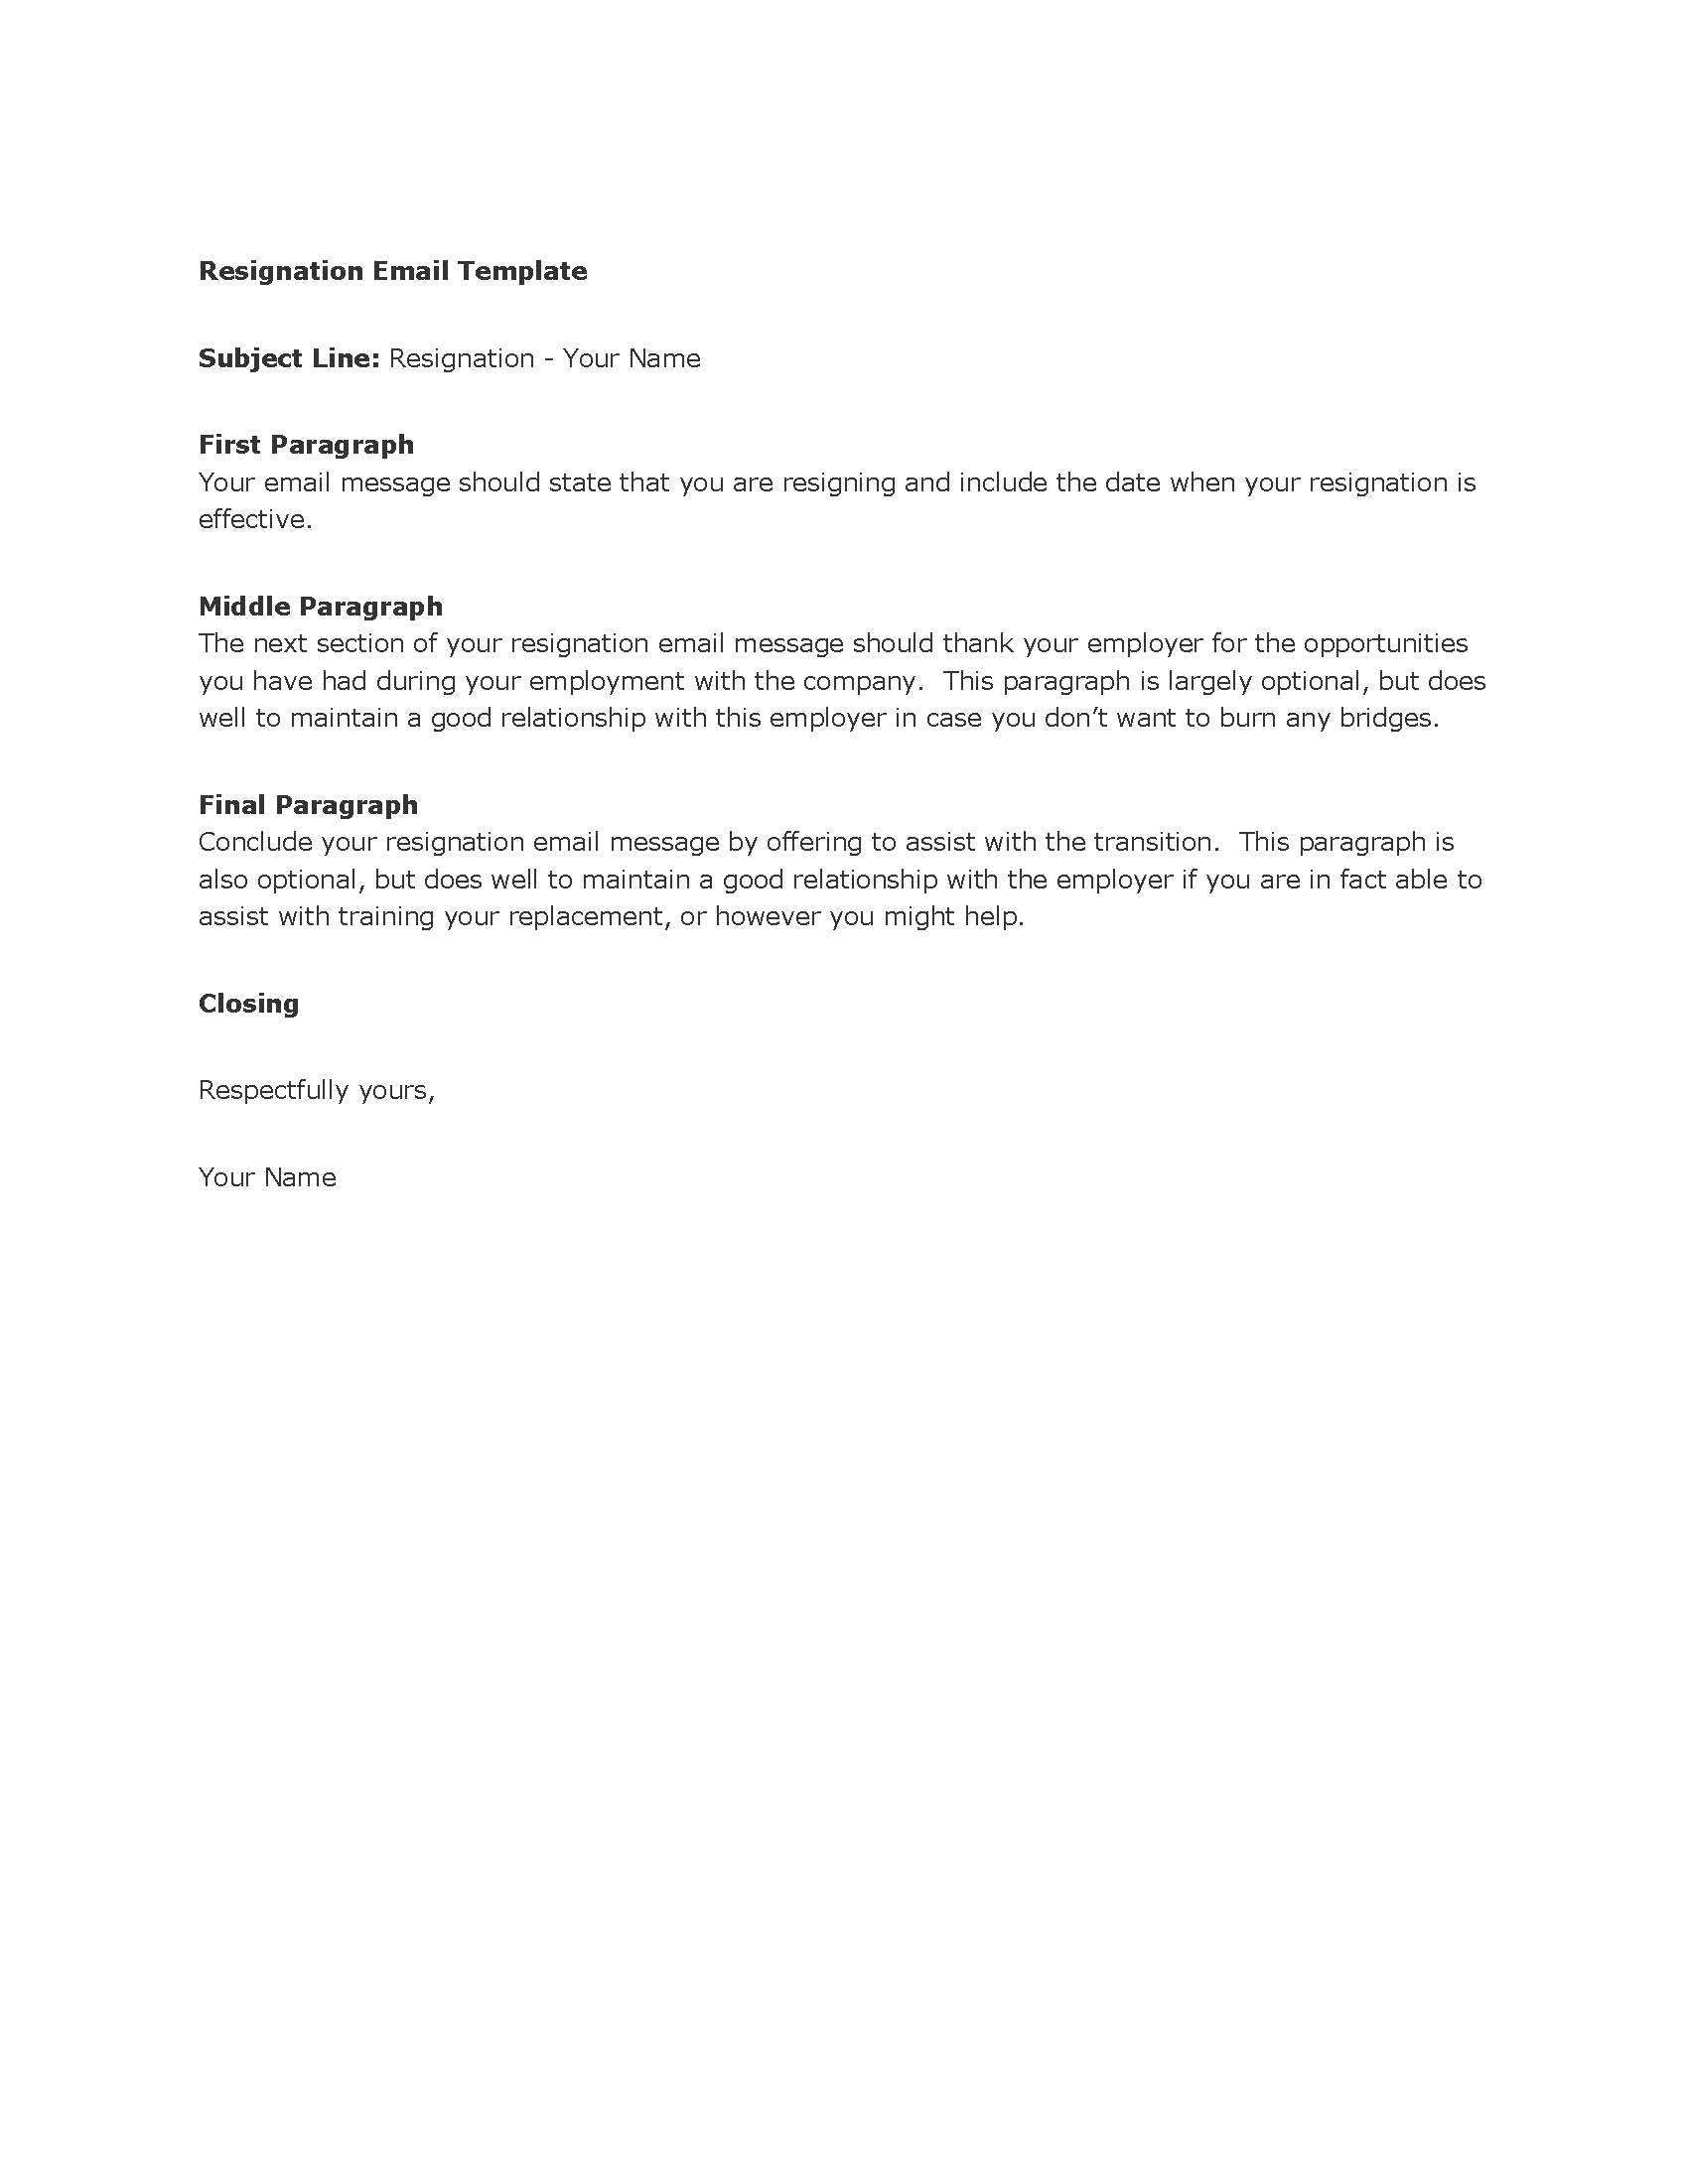 Cover Letter Quit Job Employee Thank You Template